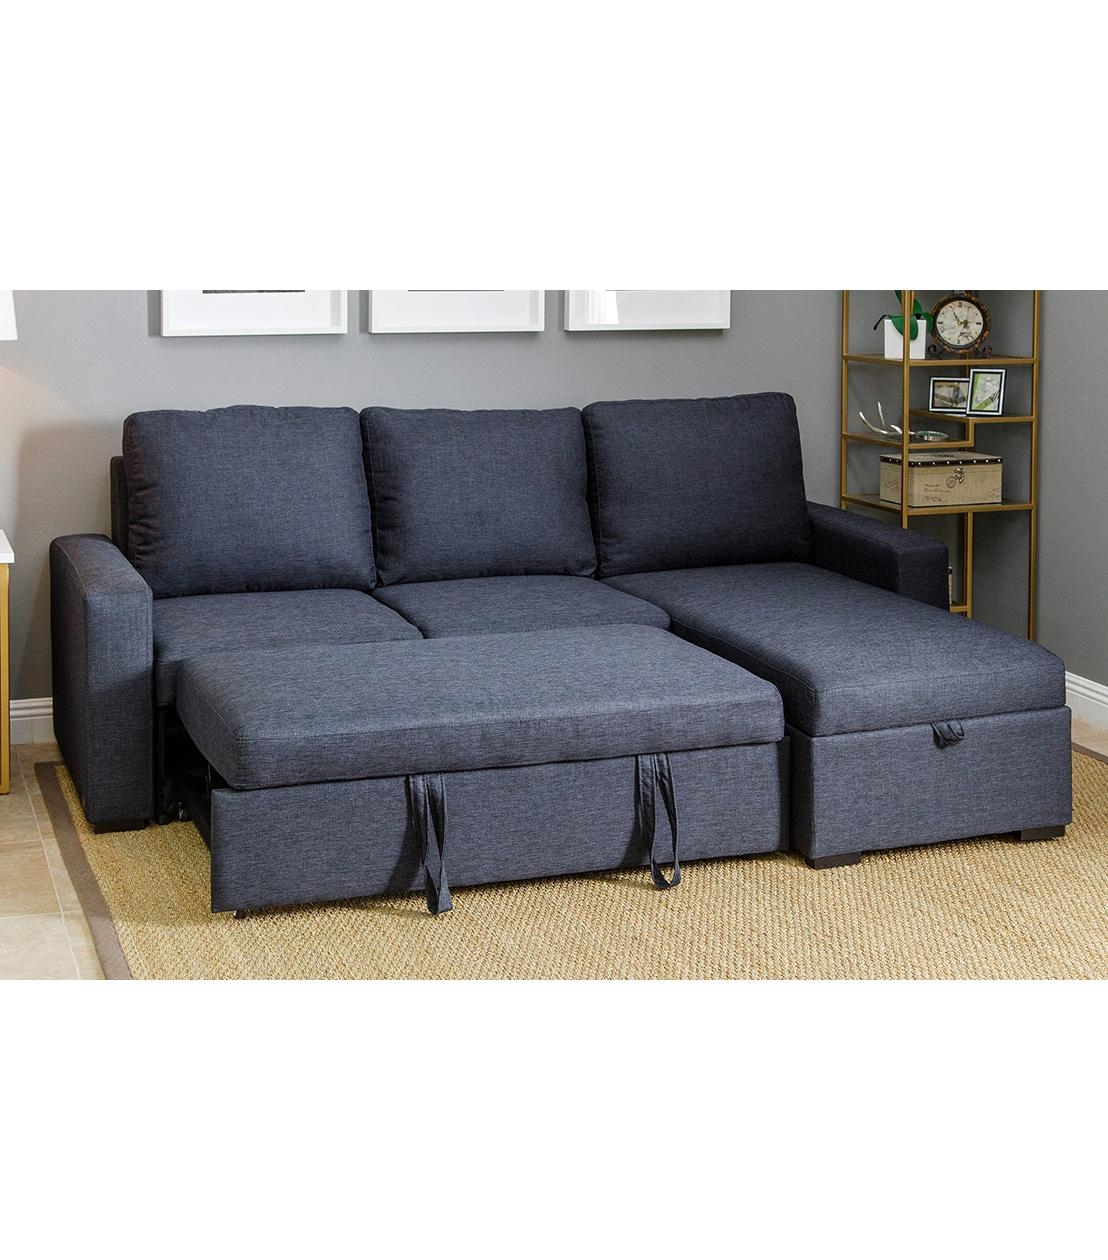 Sectionals Intended For Abbyson Sectional Sofas (Image 16 of 20)